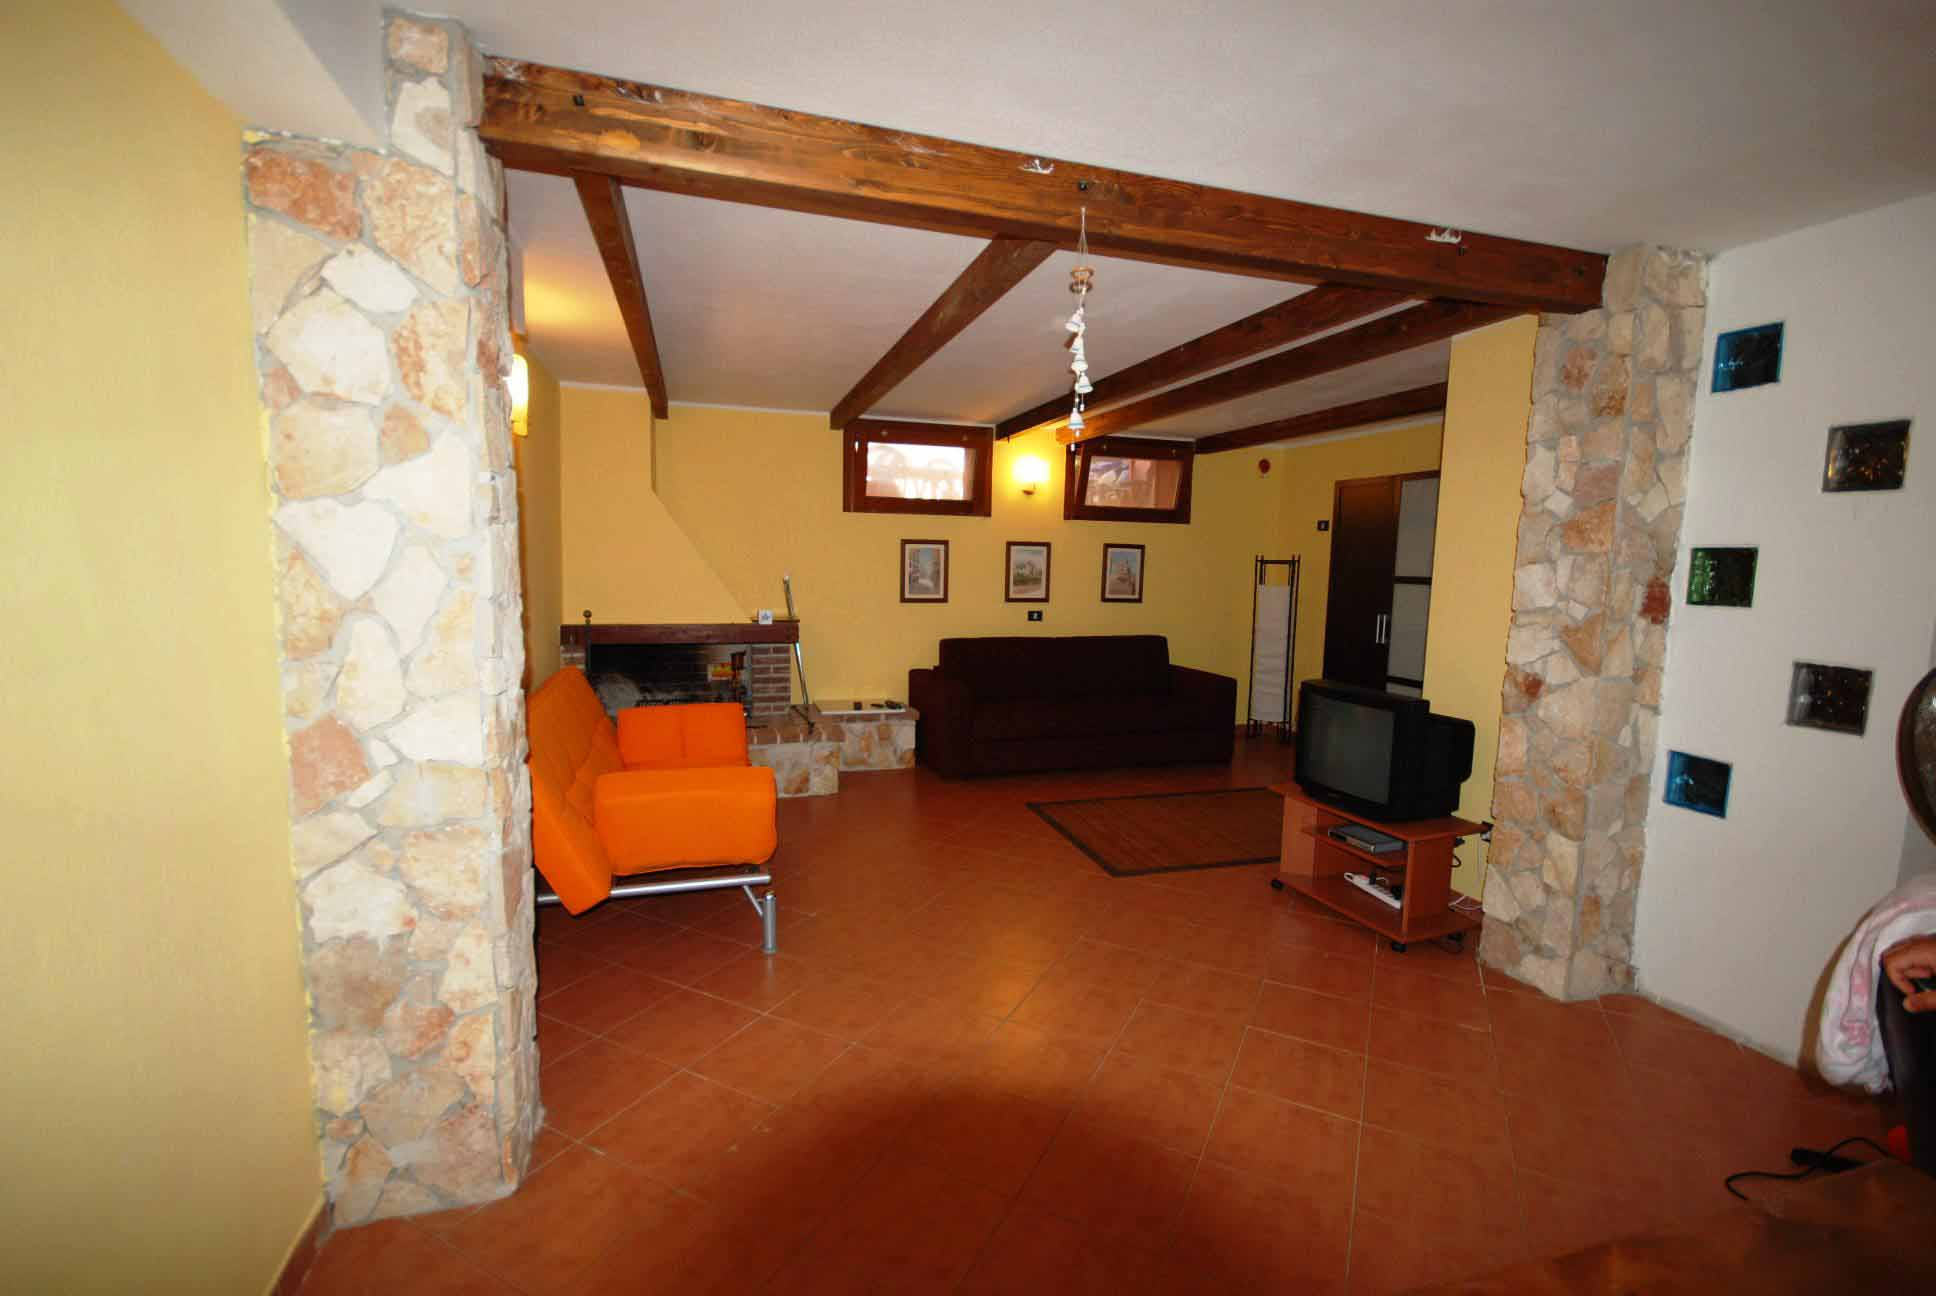 Maracalagonis BB Home Sweet Home, Maracalagonis, Italy, Italy hotels and hostels